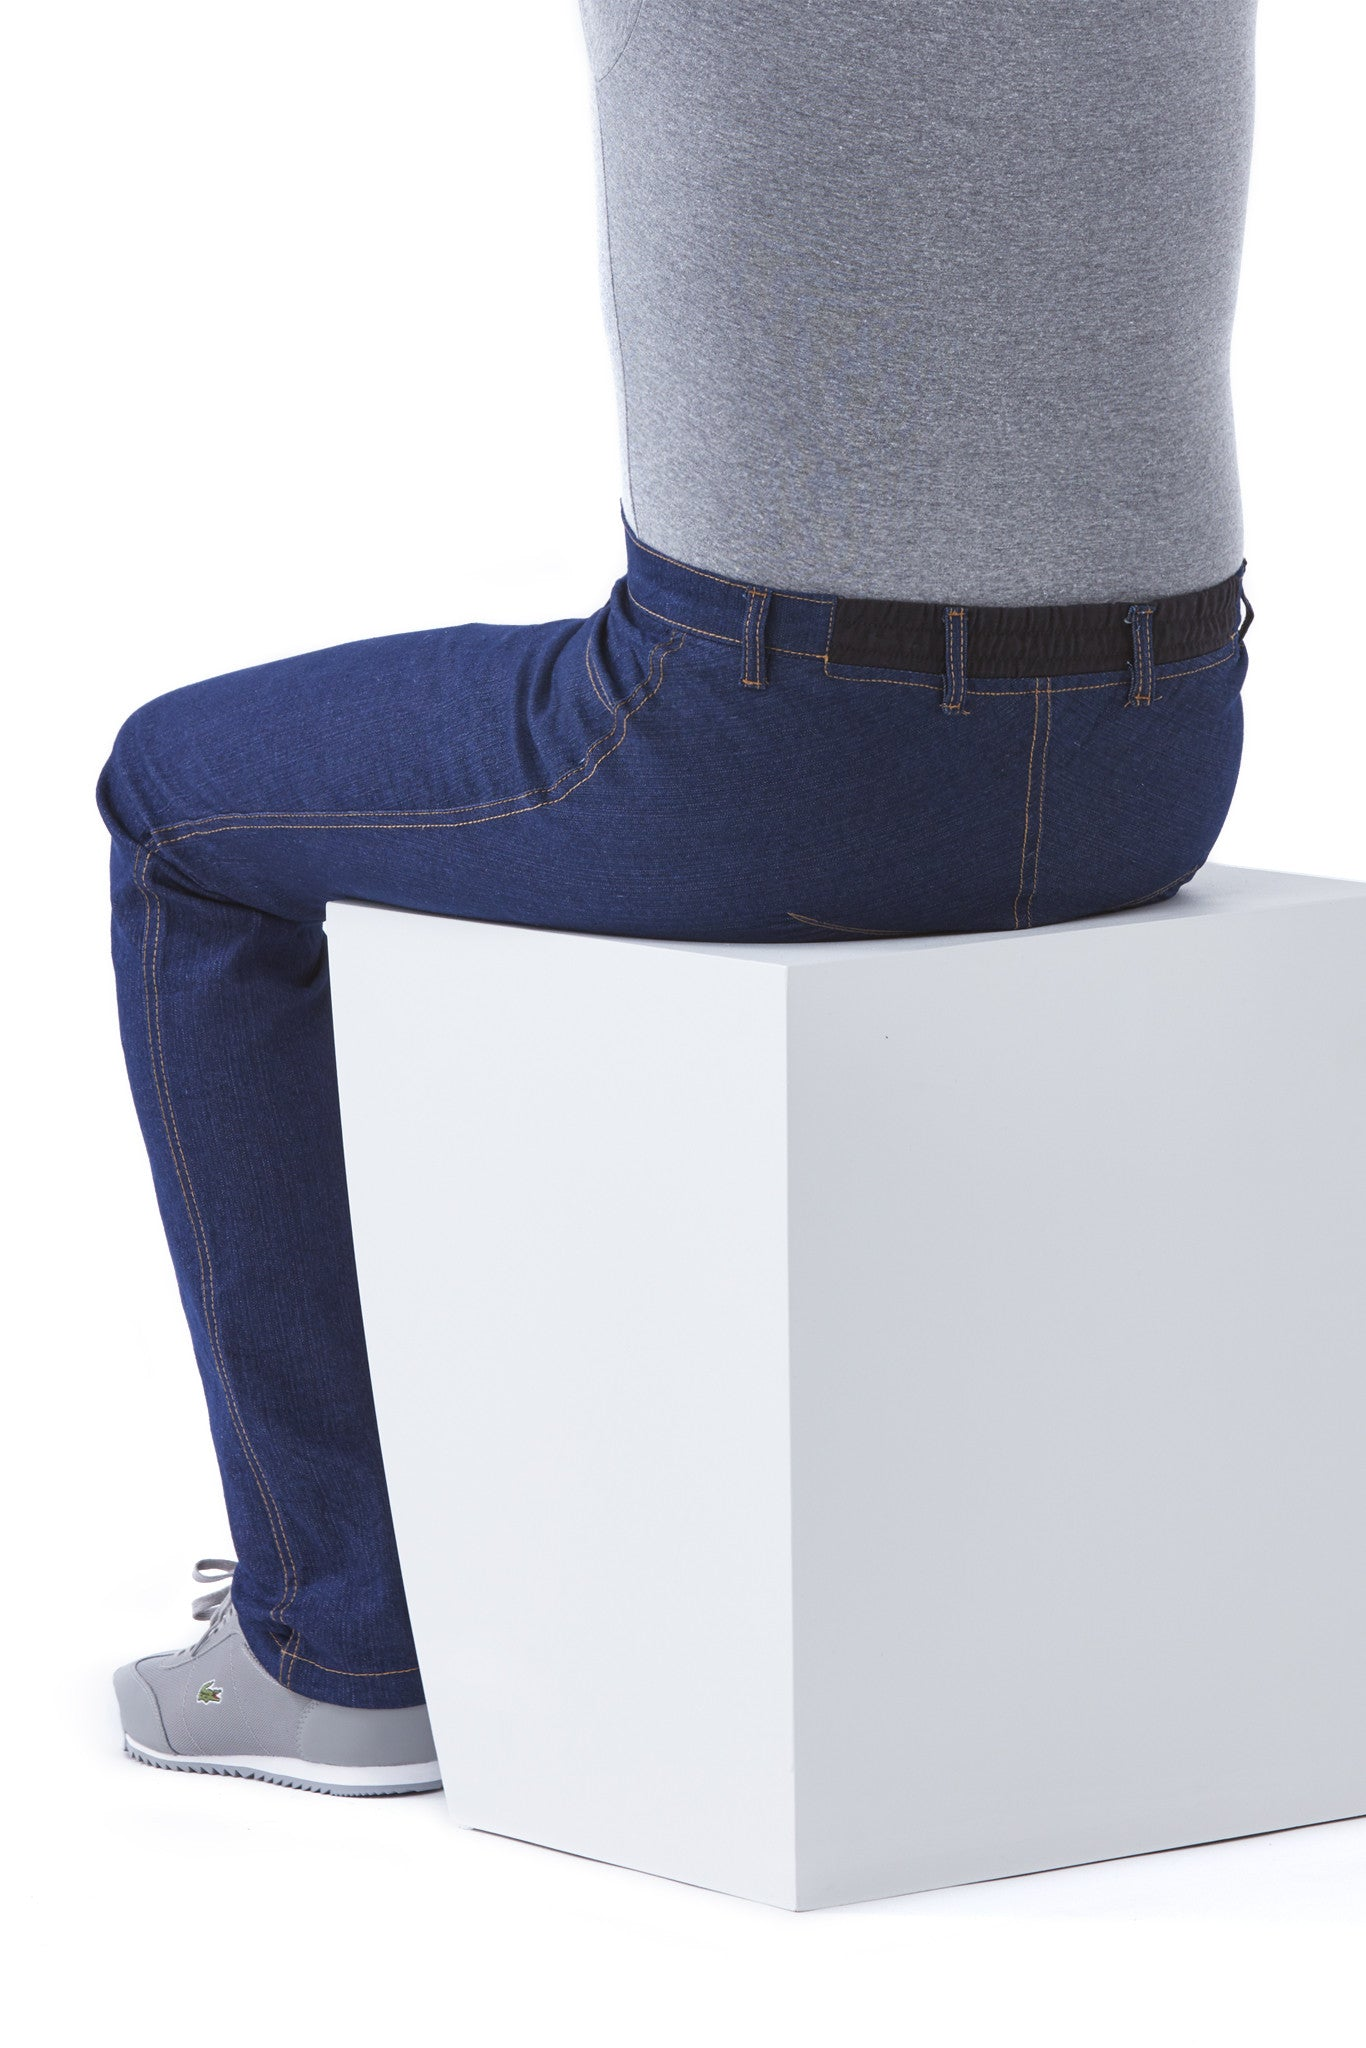 back shot - accessible jeans for men